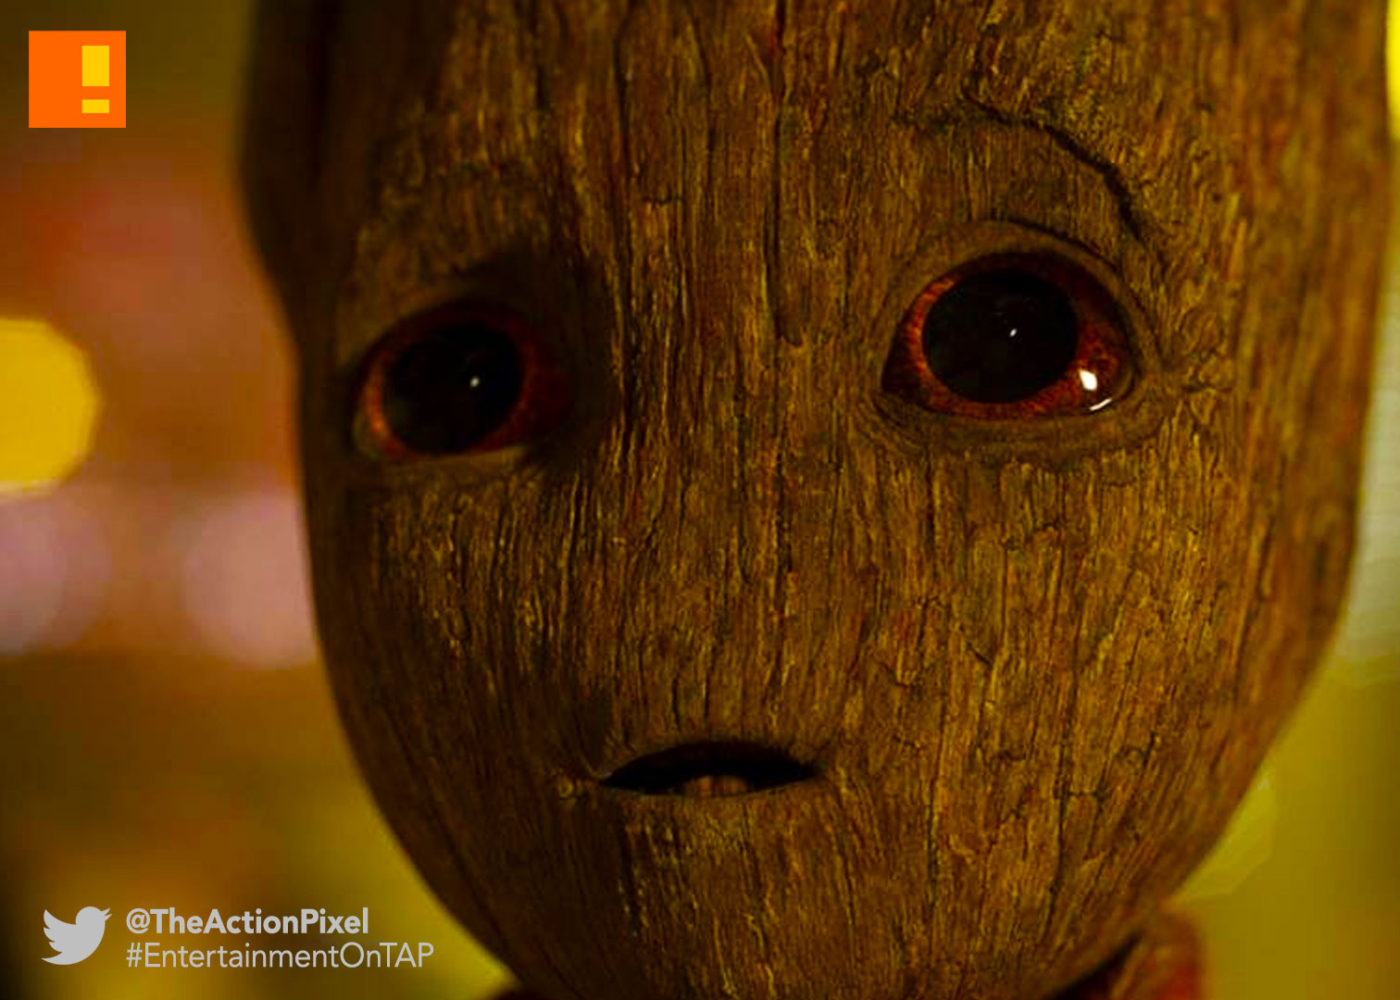 baby groot, baby groot, starlord, gamora, drax, gotg, gotg vol. 2 , guardians of the galaxy, guardians of the galaxy vol. 2, entertainment on tap, marvel, marvel studios , marvel comics, teaser trailer, entertainment on tap, the action pixel